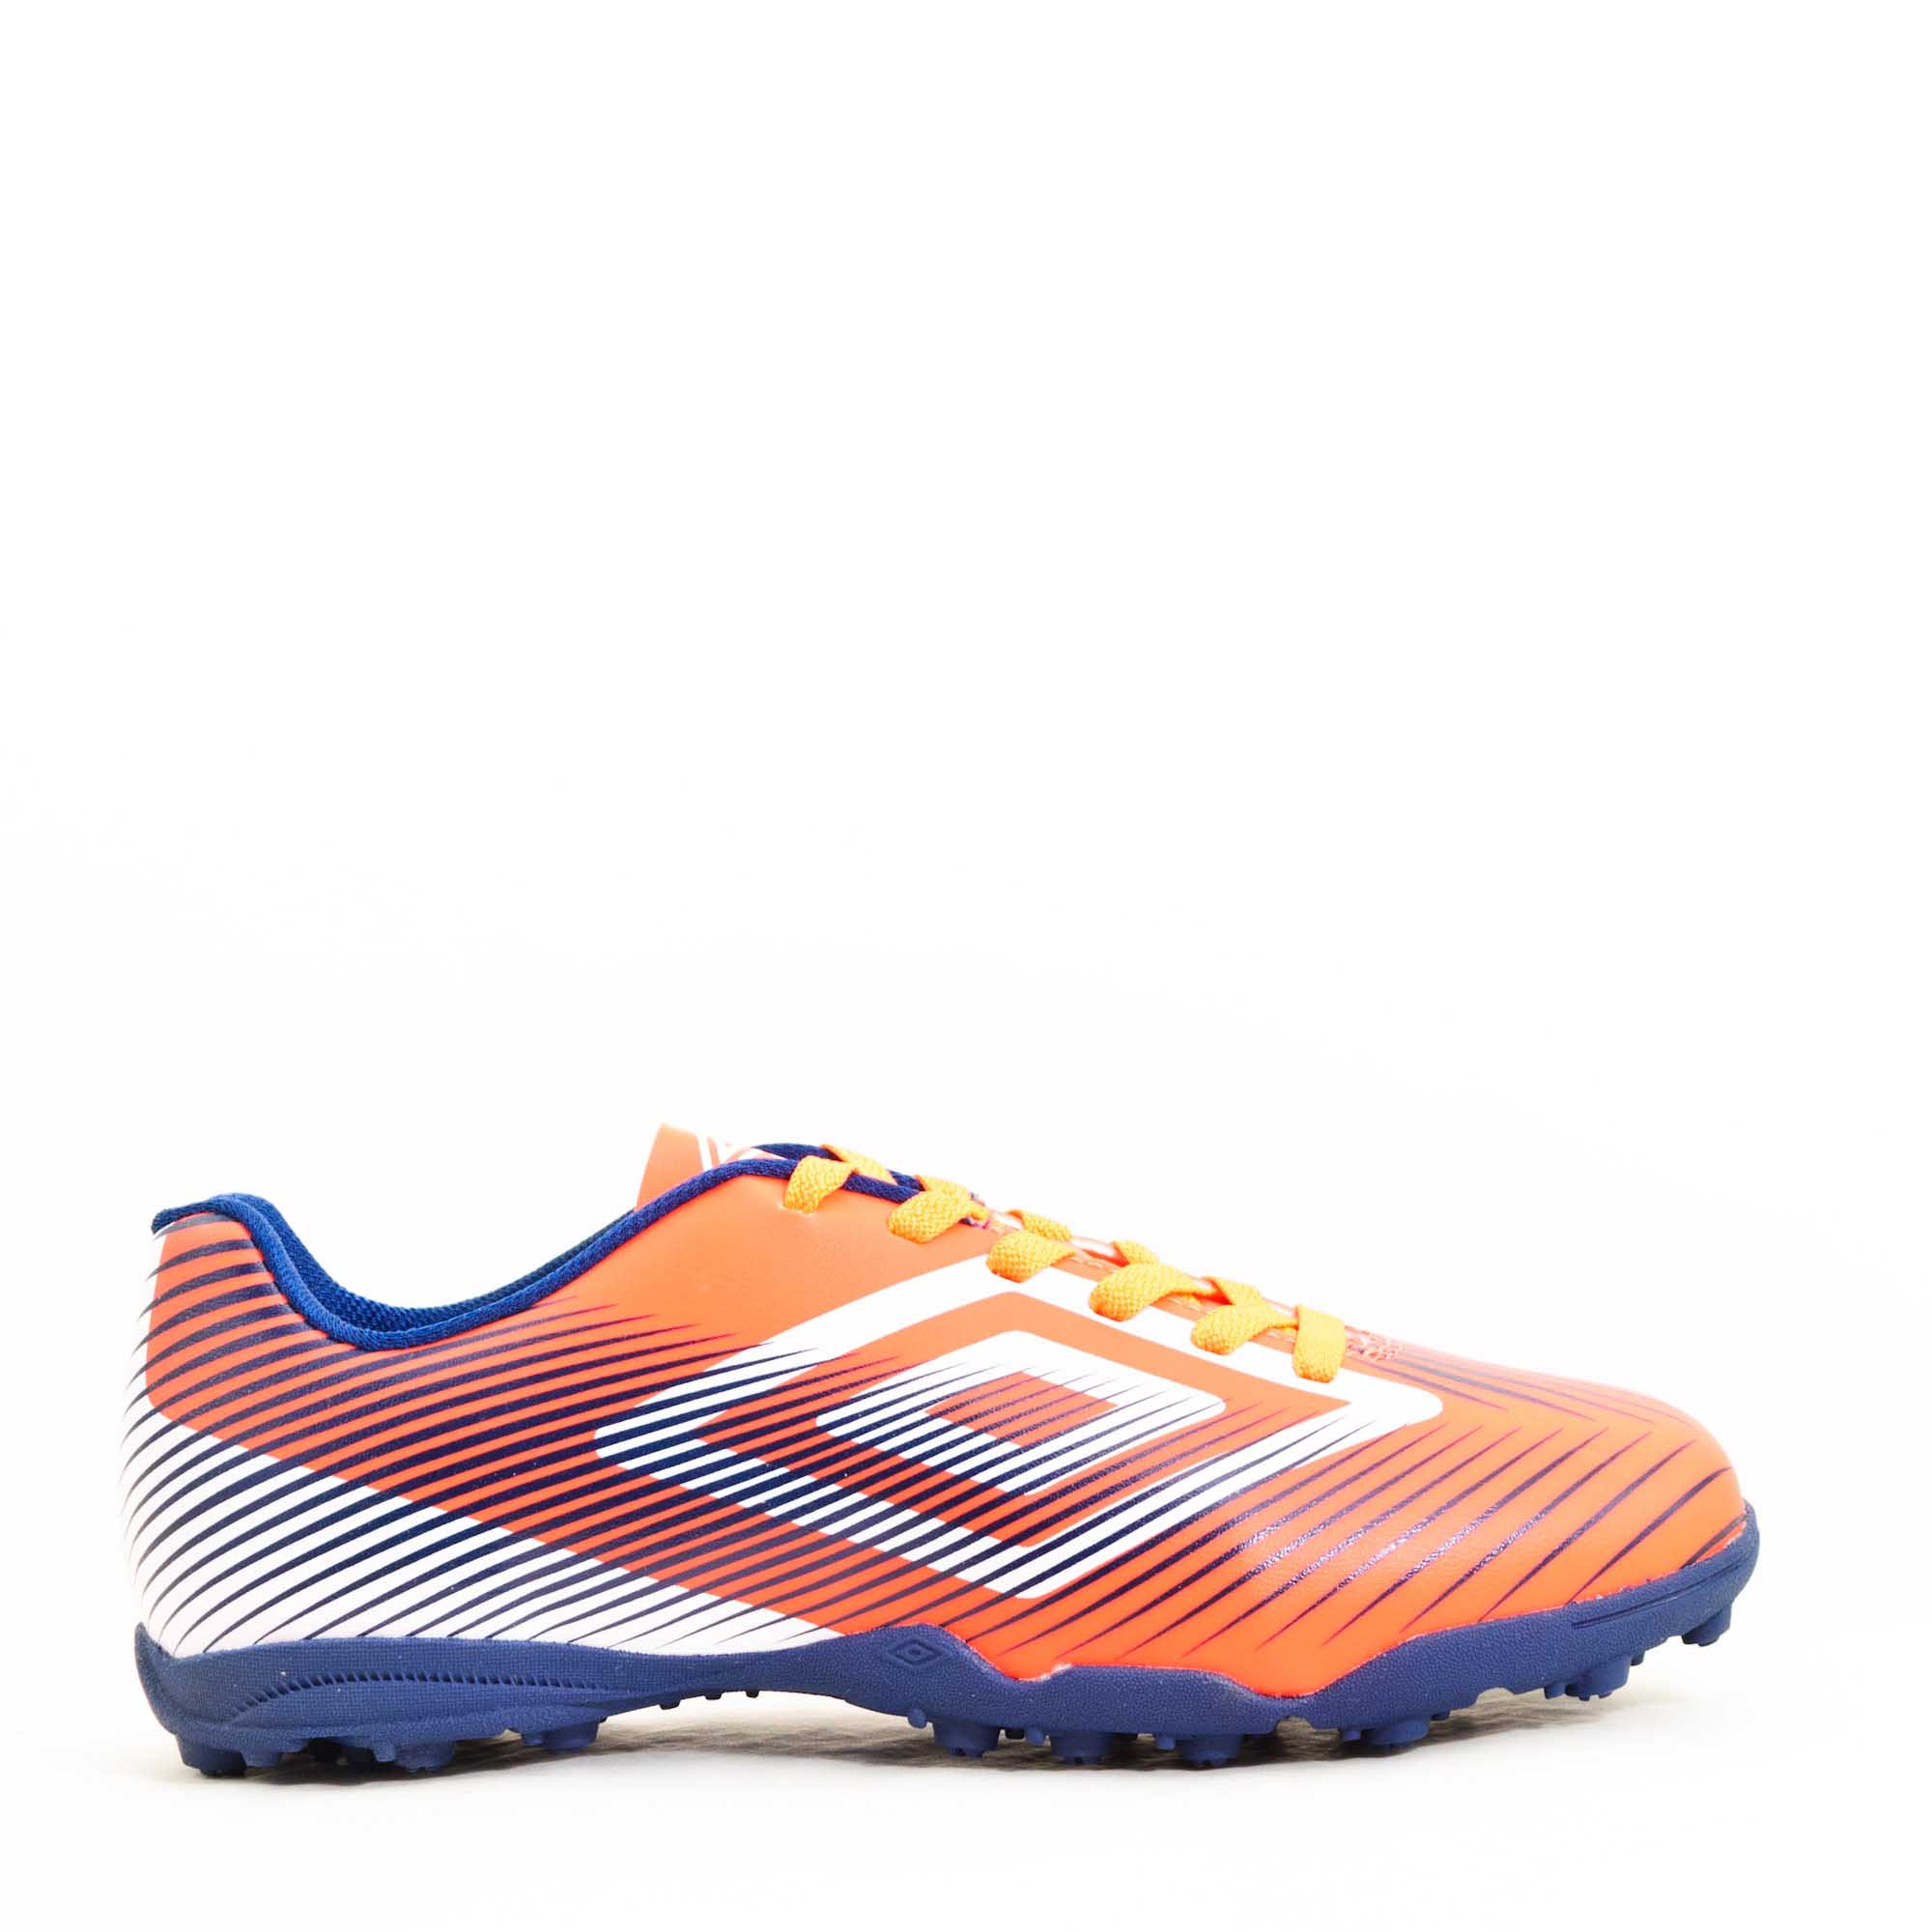 072739be6 BOTINES STY SPEED II CORAL BCO MRN. Marca  Umbro